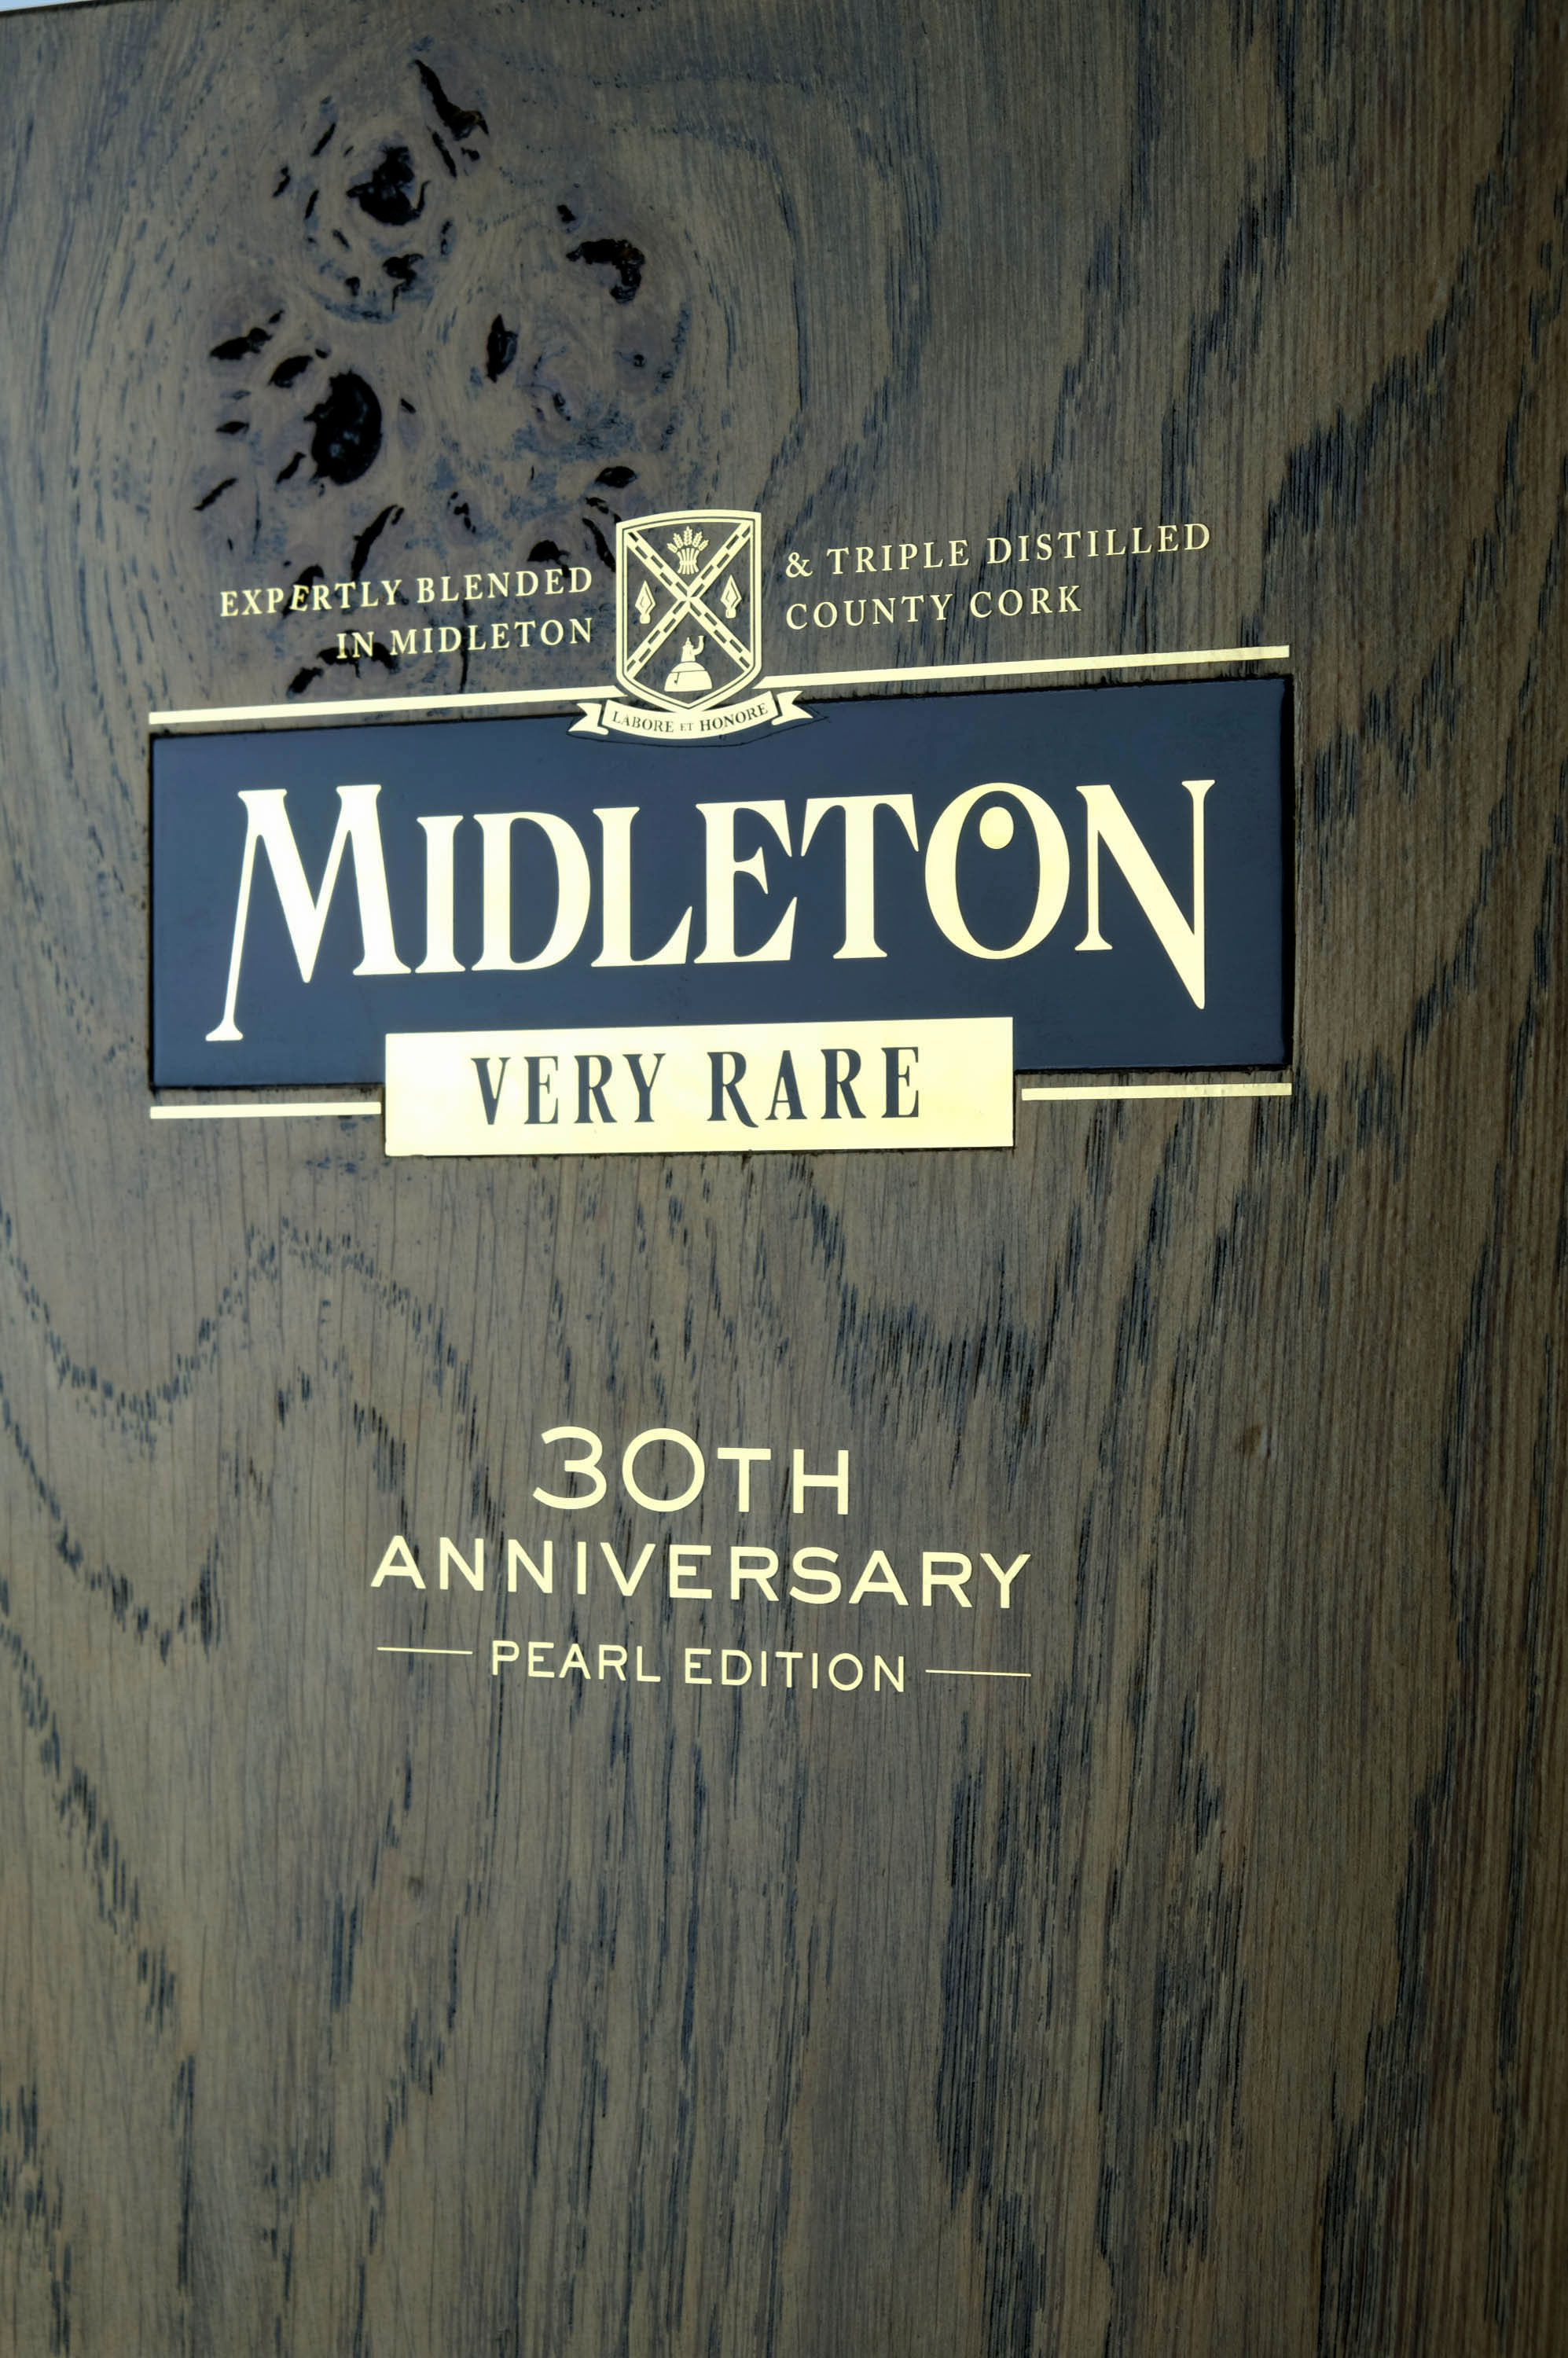 midleton very rare 30th anniversary - pearl edition